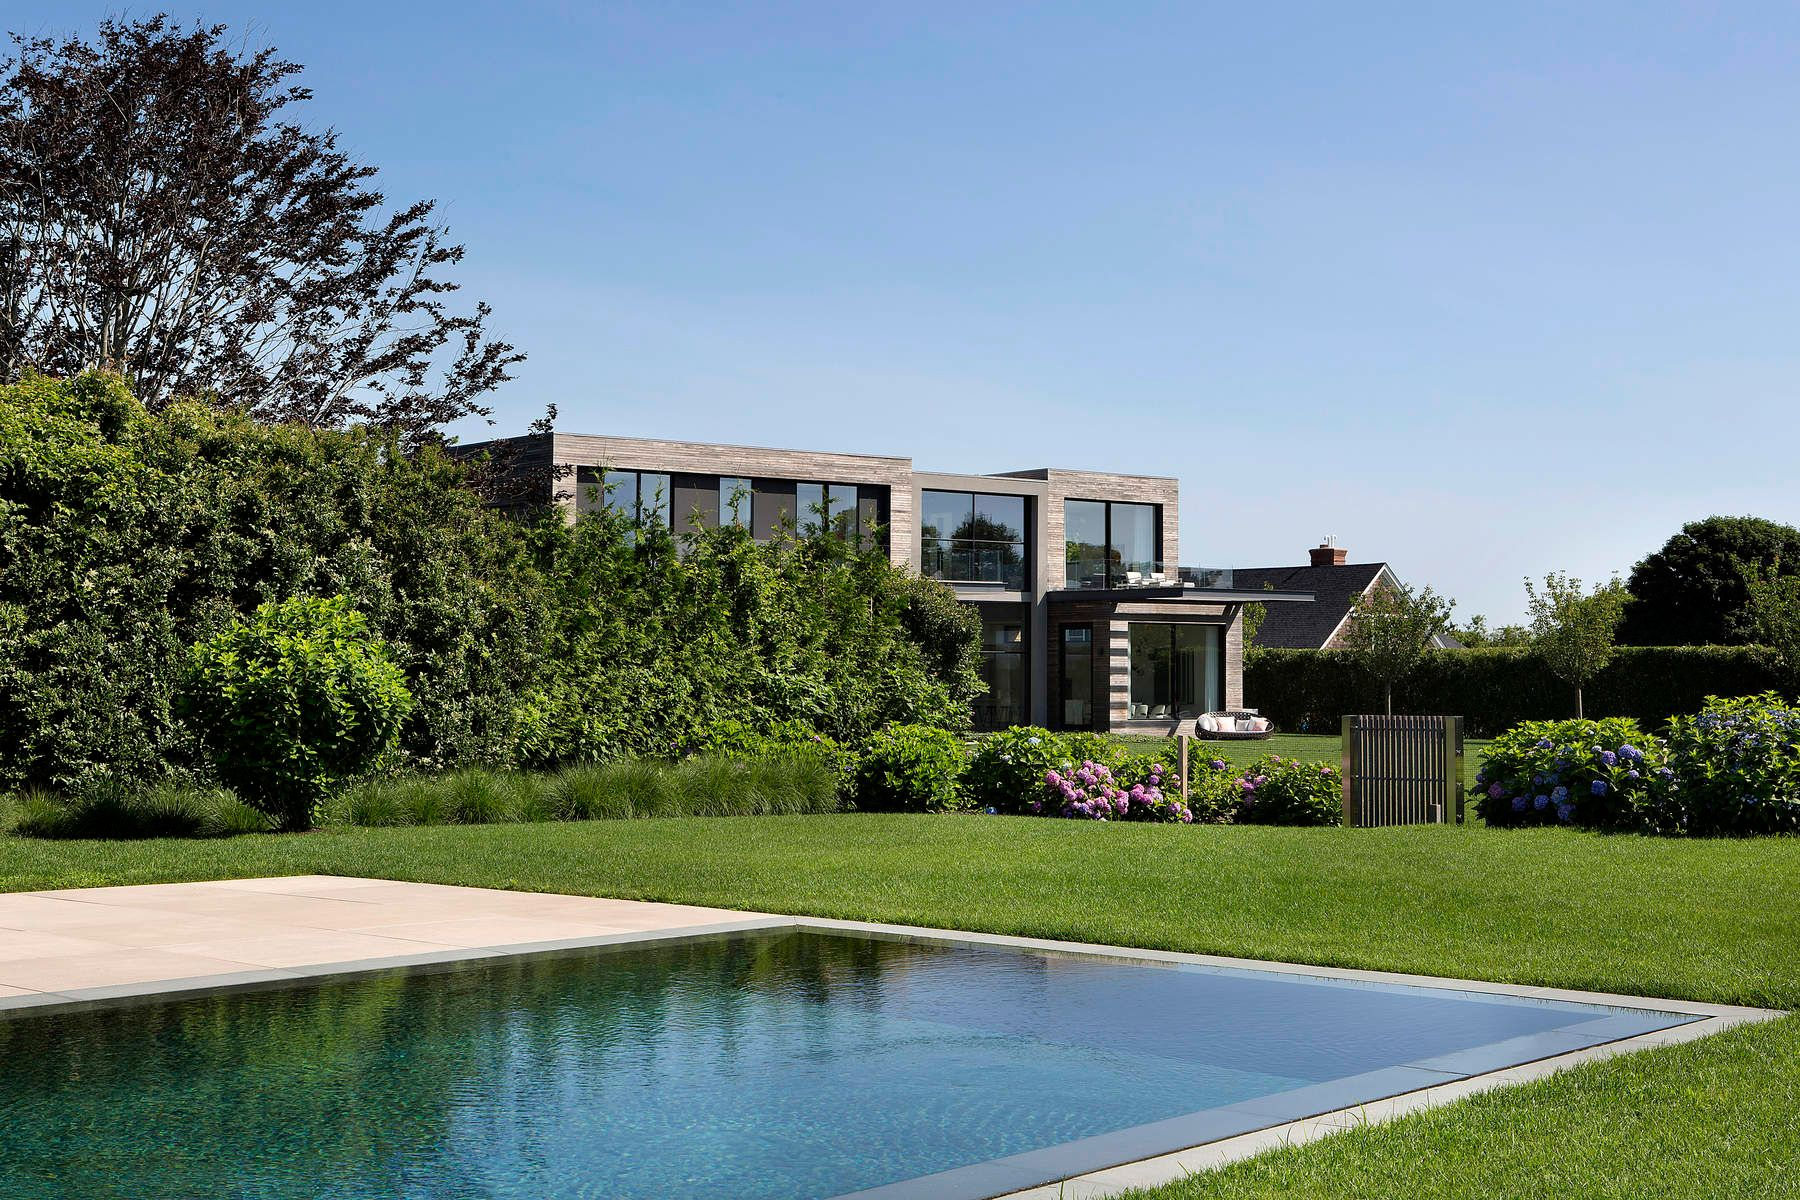 Single Family Home for Rent at Incredible Modern In Best Location Sagaponack, New York 11962 United States